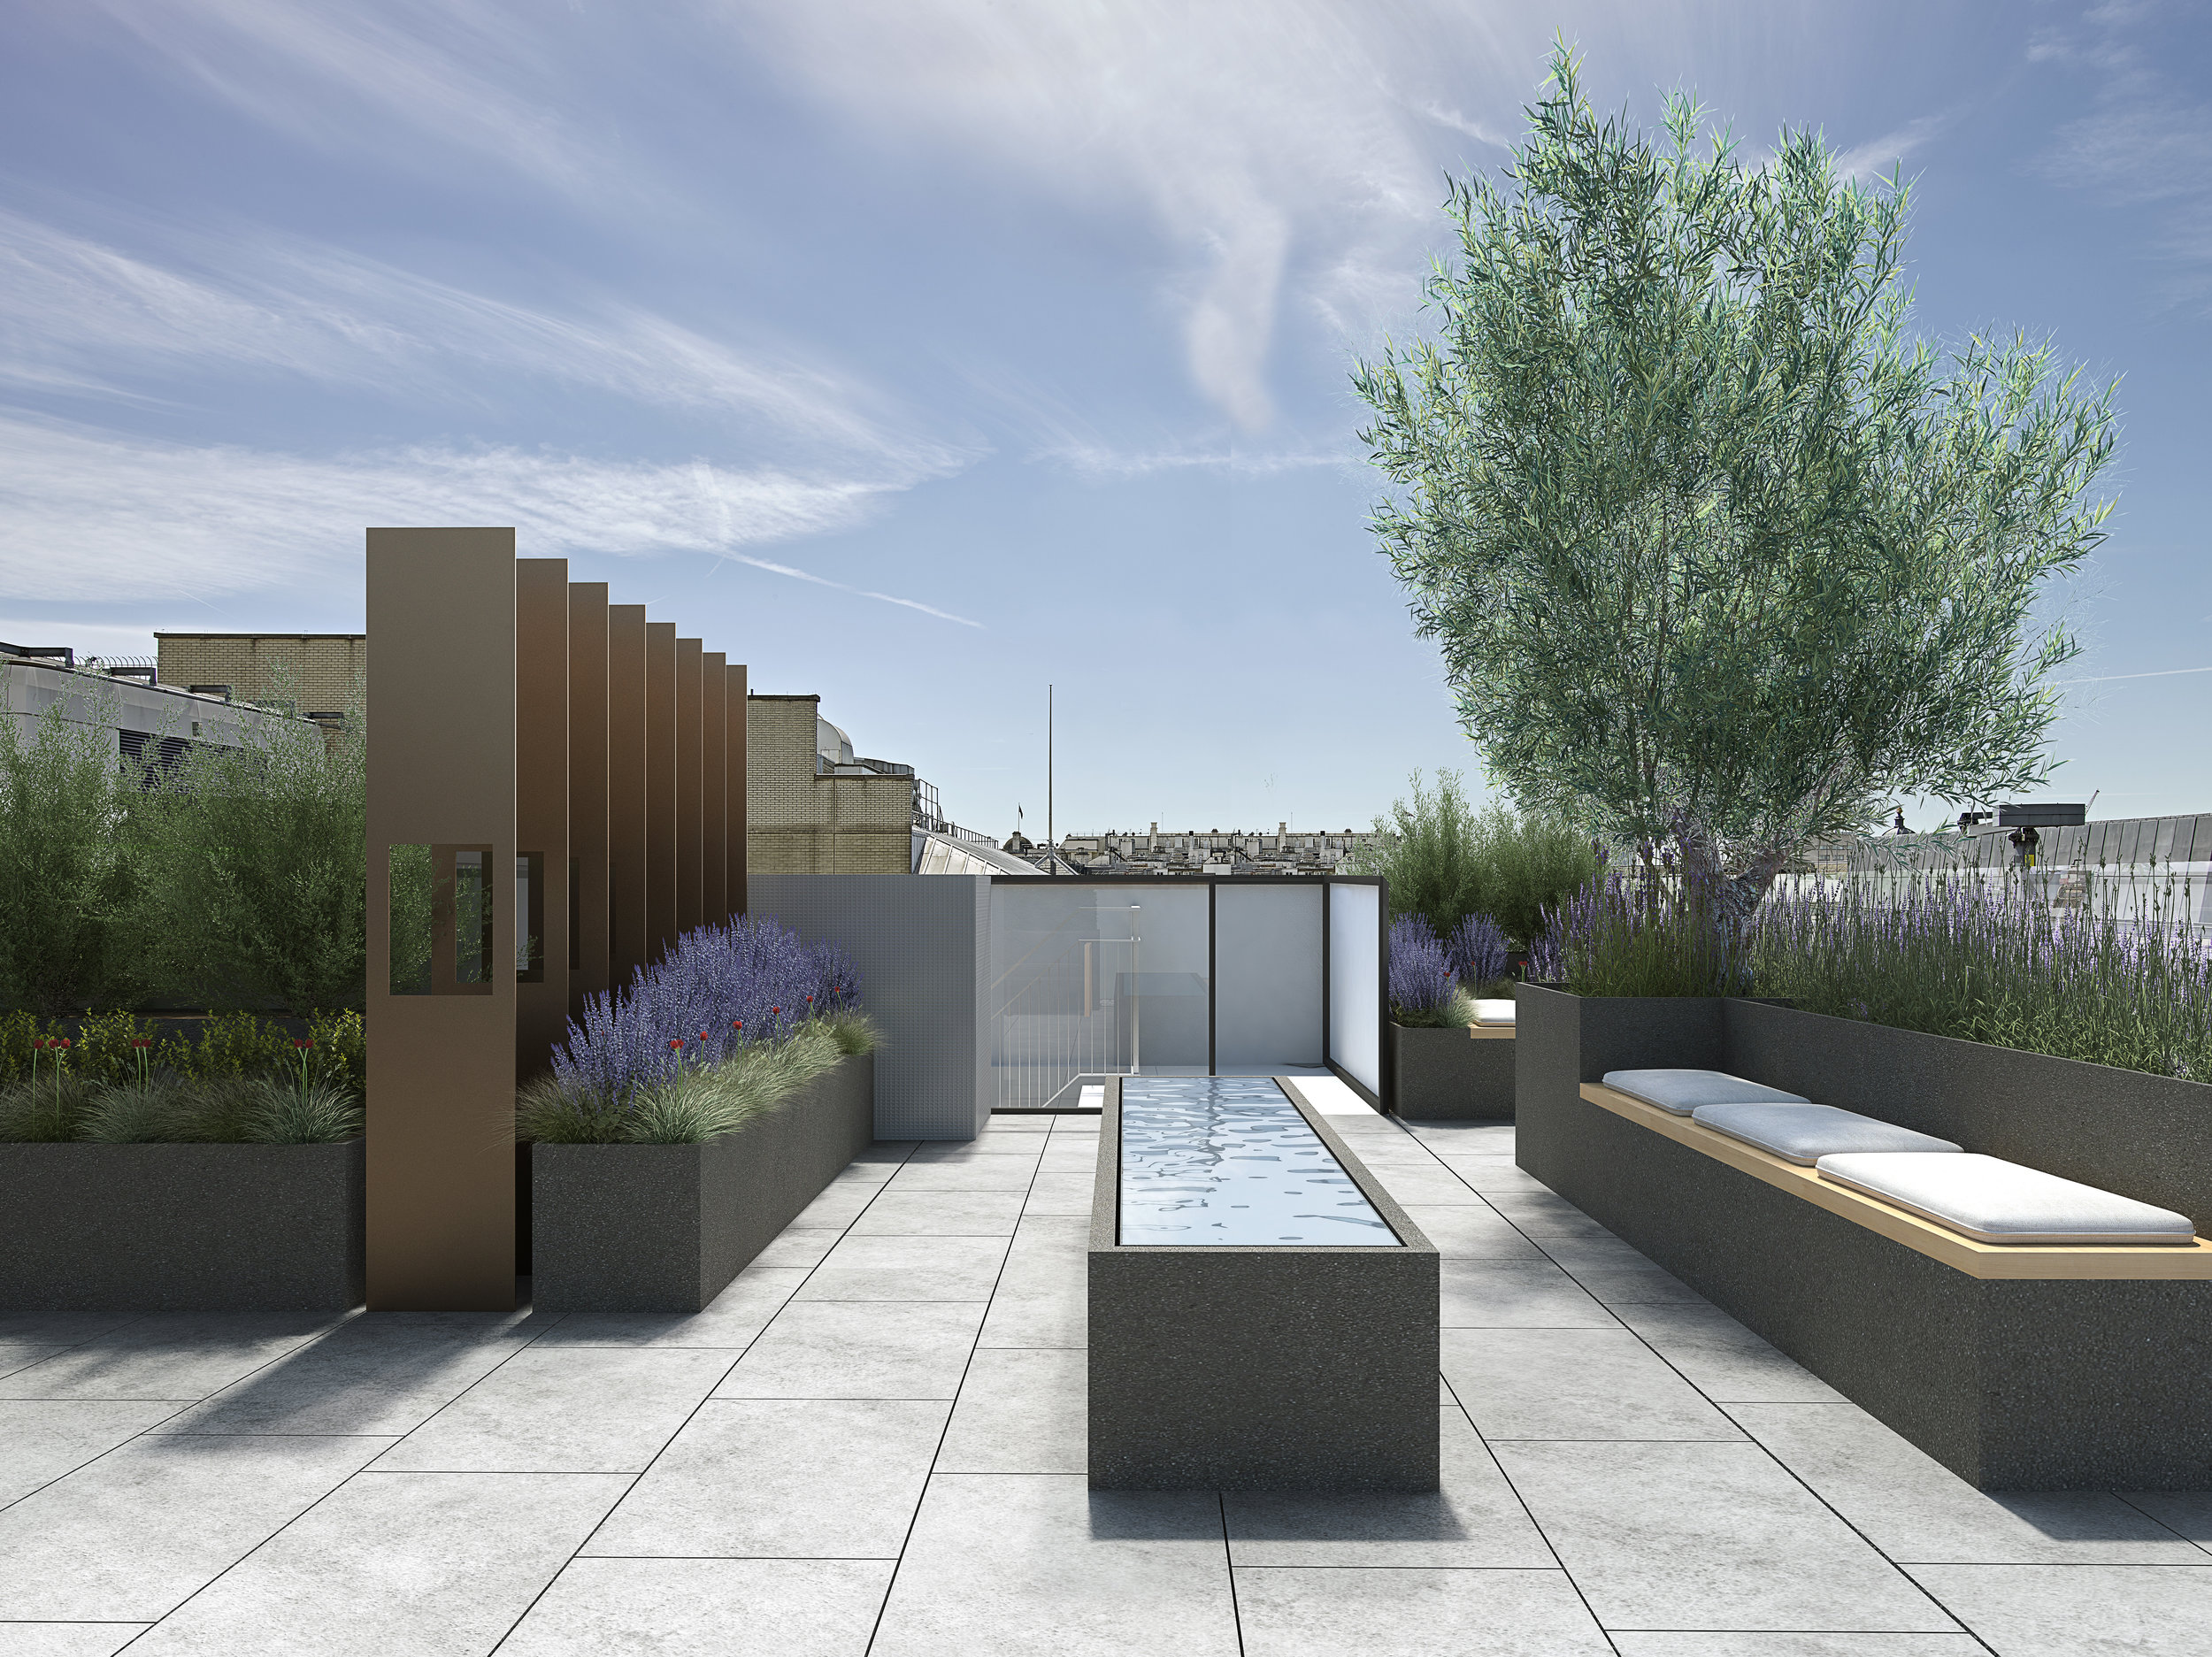 - Roof Garden - - The stunning roof garden has been conceived by Andy Sturgeon Design Landscape and Garden Design. Since 1988 Andy has been dedicated to creating dynamic external spaces for private, commercial, and international clients. Twice voted one of the top 10 garden designers in the UK and winner of numerous awards including 7 Gold Medals and twice Best in Show at The RHS Chelsea Flower Show, he blends strong design, natural materials and innovative planting to create bold, architectural and timeless landscapes.